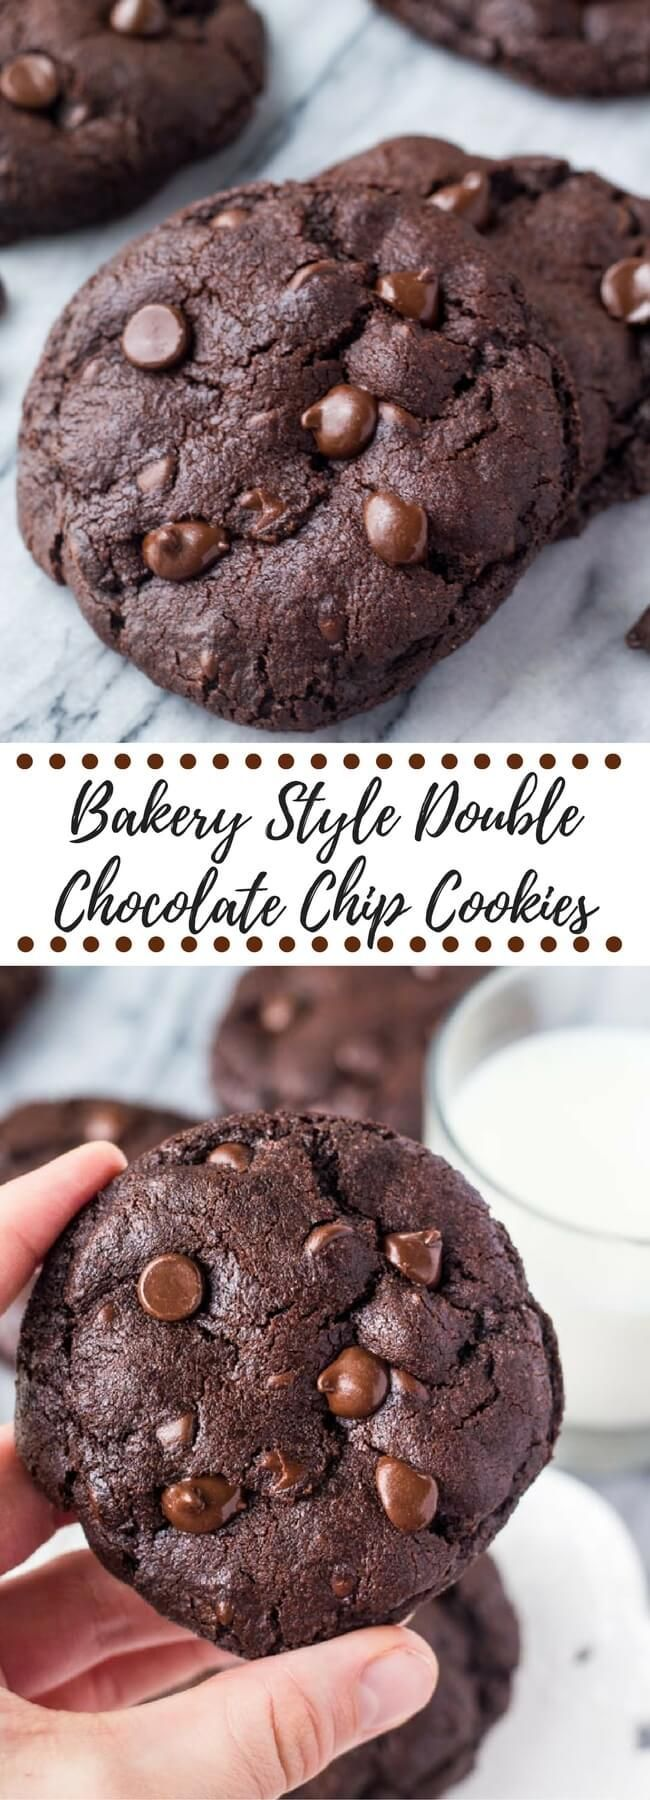 Bakery Style Double Chocolate Chip Cookies #chocolatechipcookies